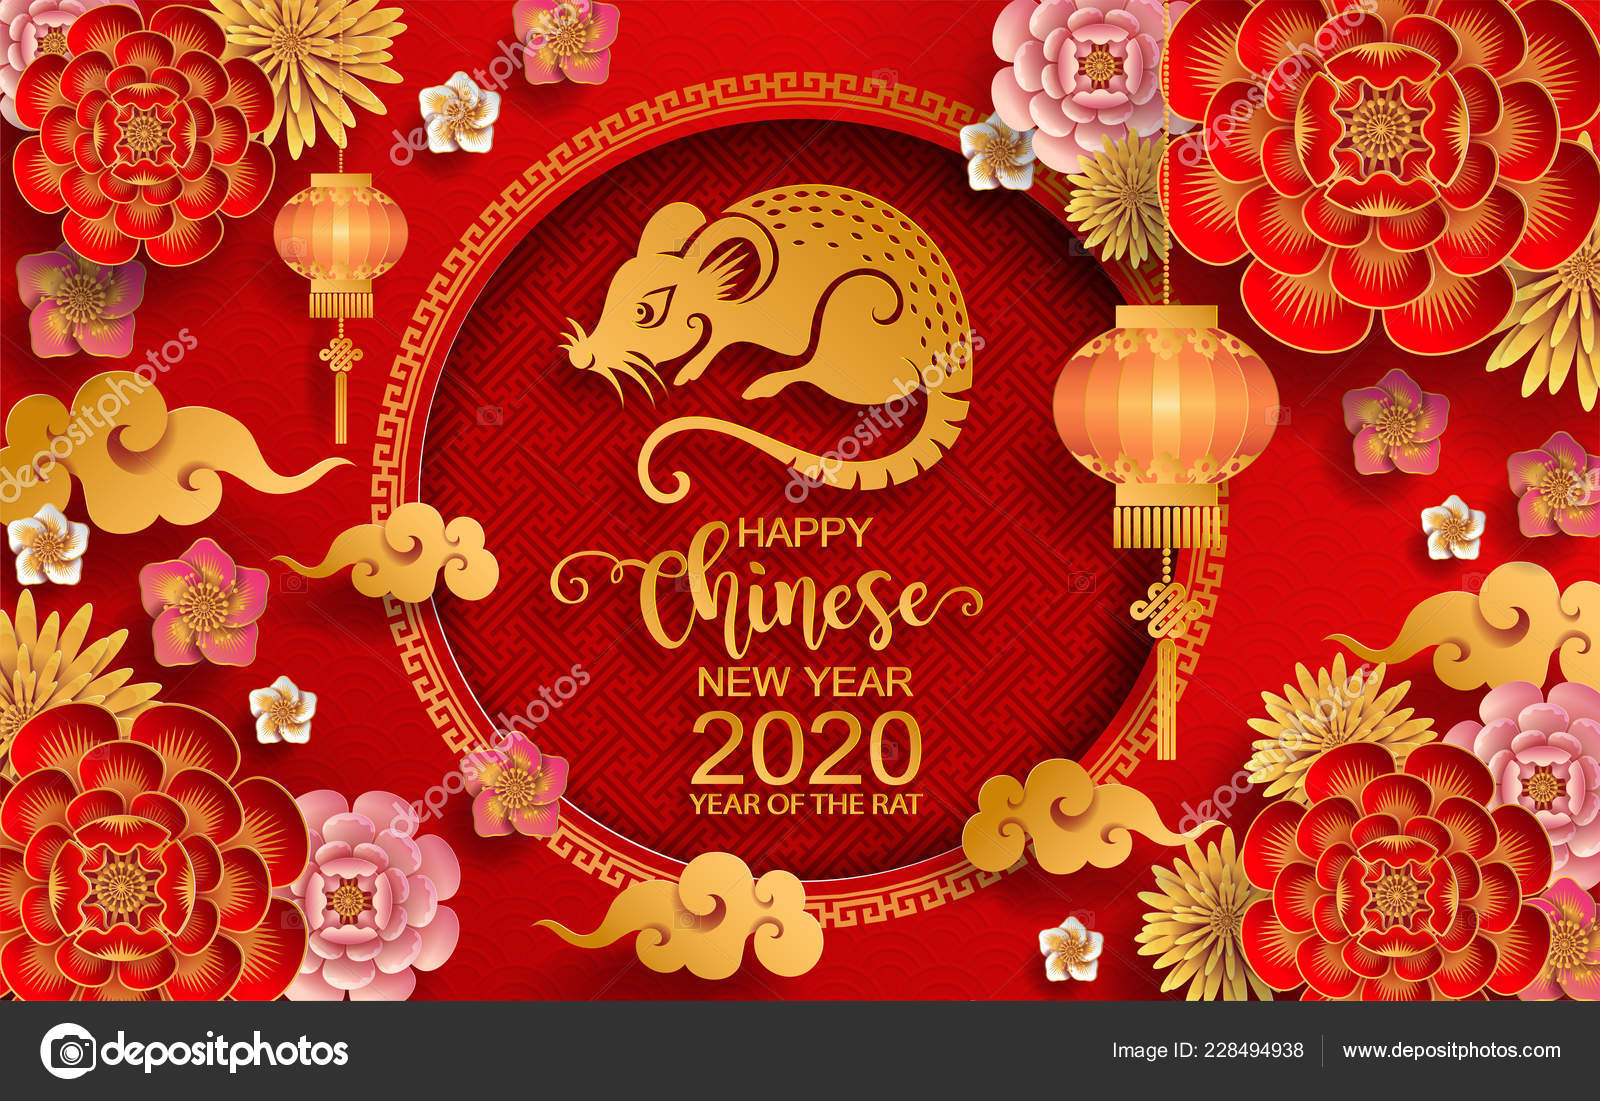 Happy Chinese New Year 2020 Zodiac Sign Gold Rat Paper ...